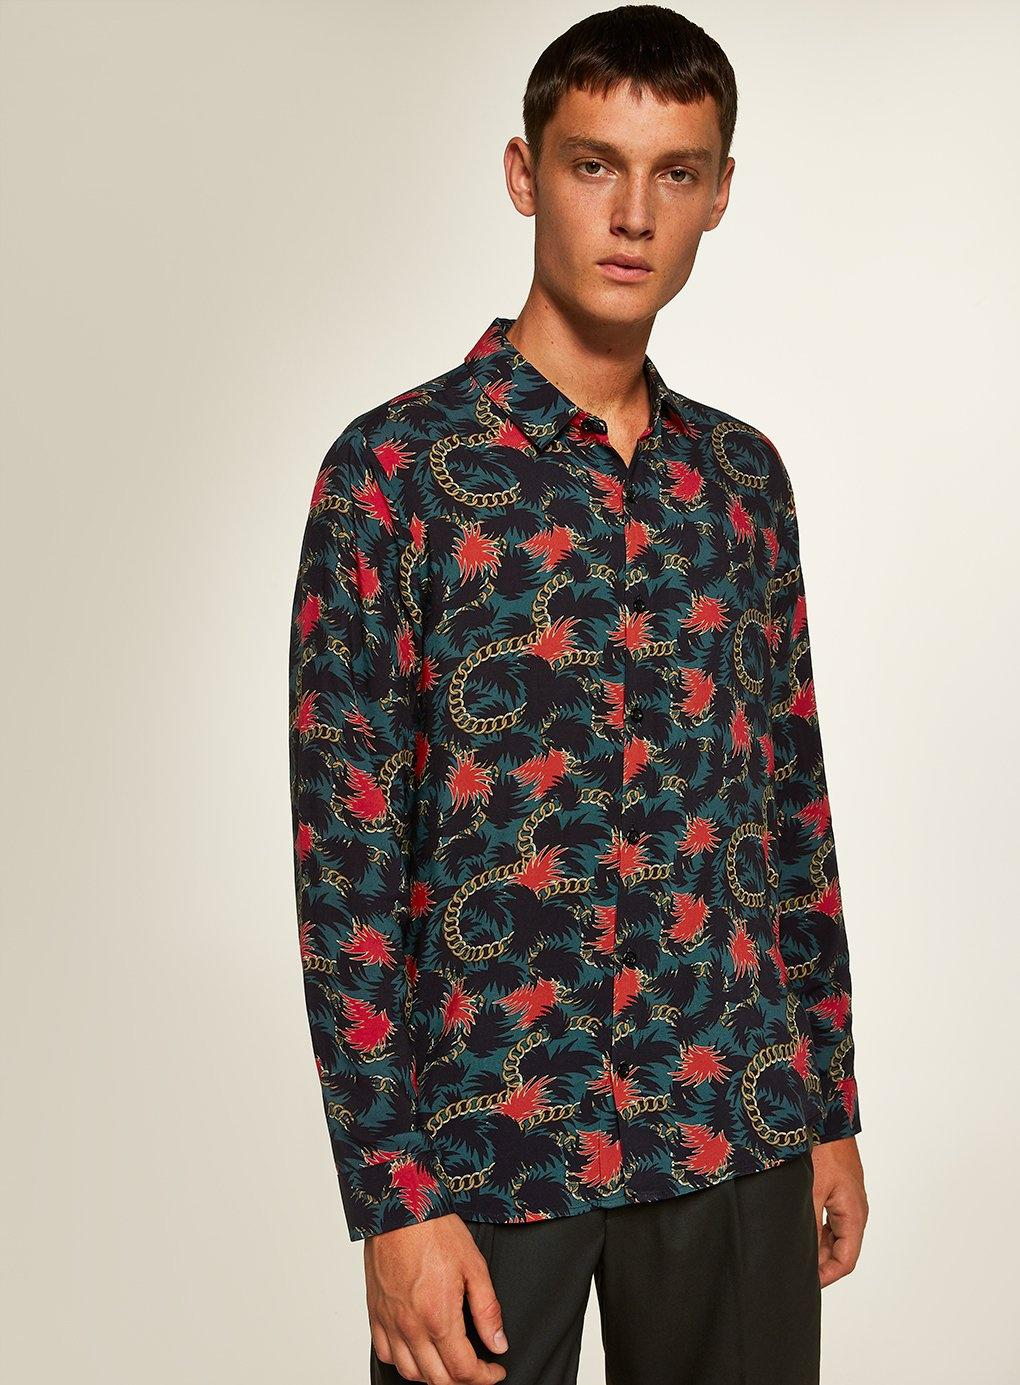 add4a4325d47 Topman Teal And Red Chain Print Slim Shirt in Blue for Men - Lyst